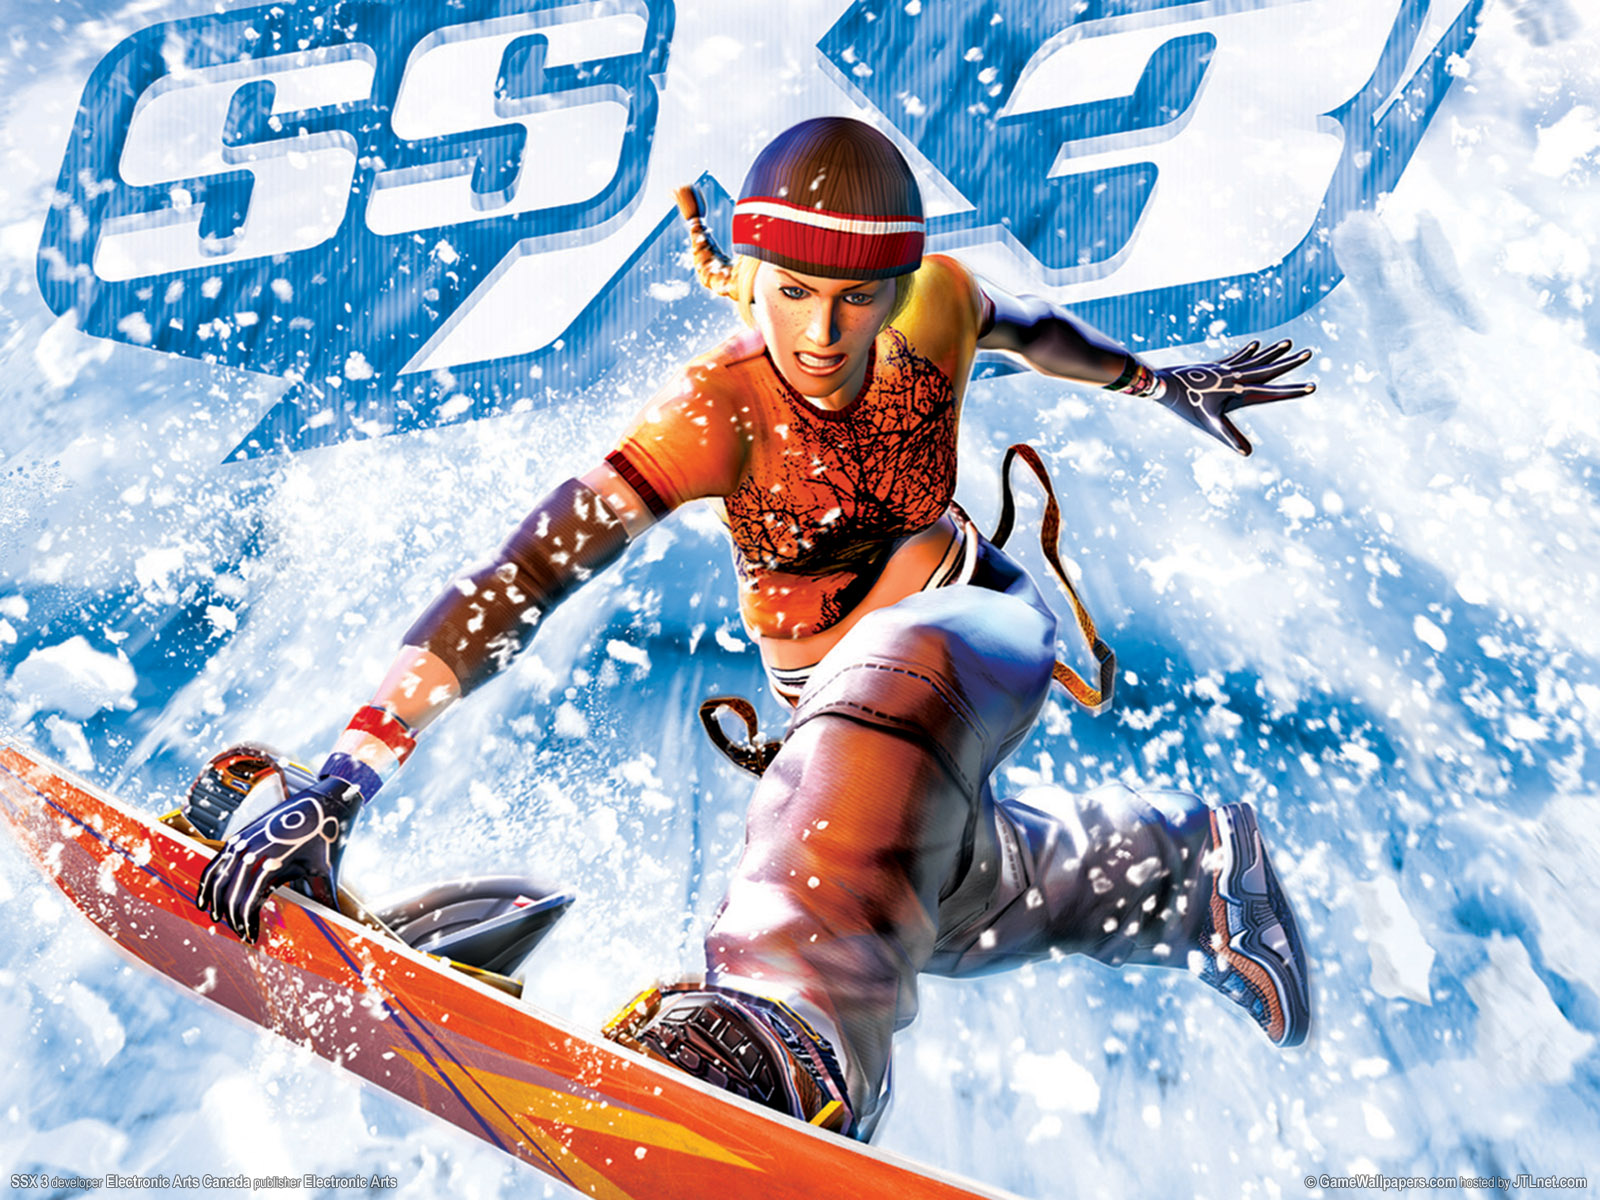 Hd Nfs Cars Wallpapers Ssx 3 Wallpapers Ssx 3 Stock Photos